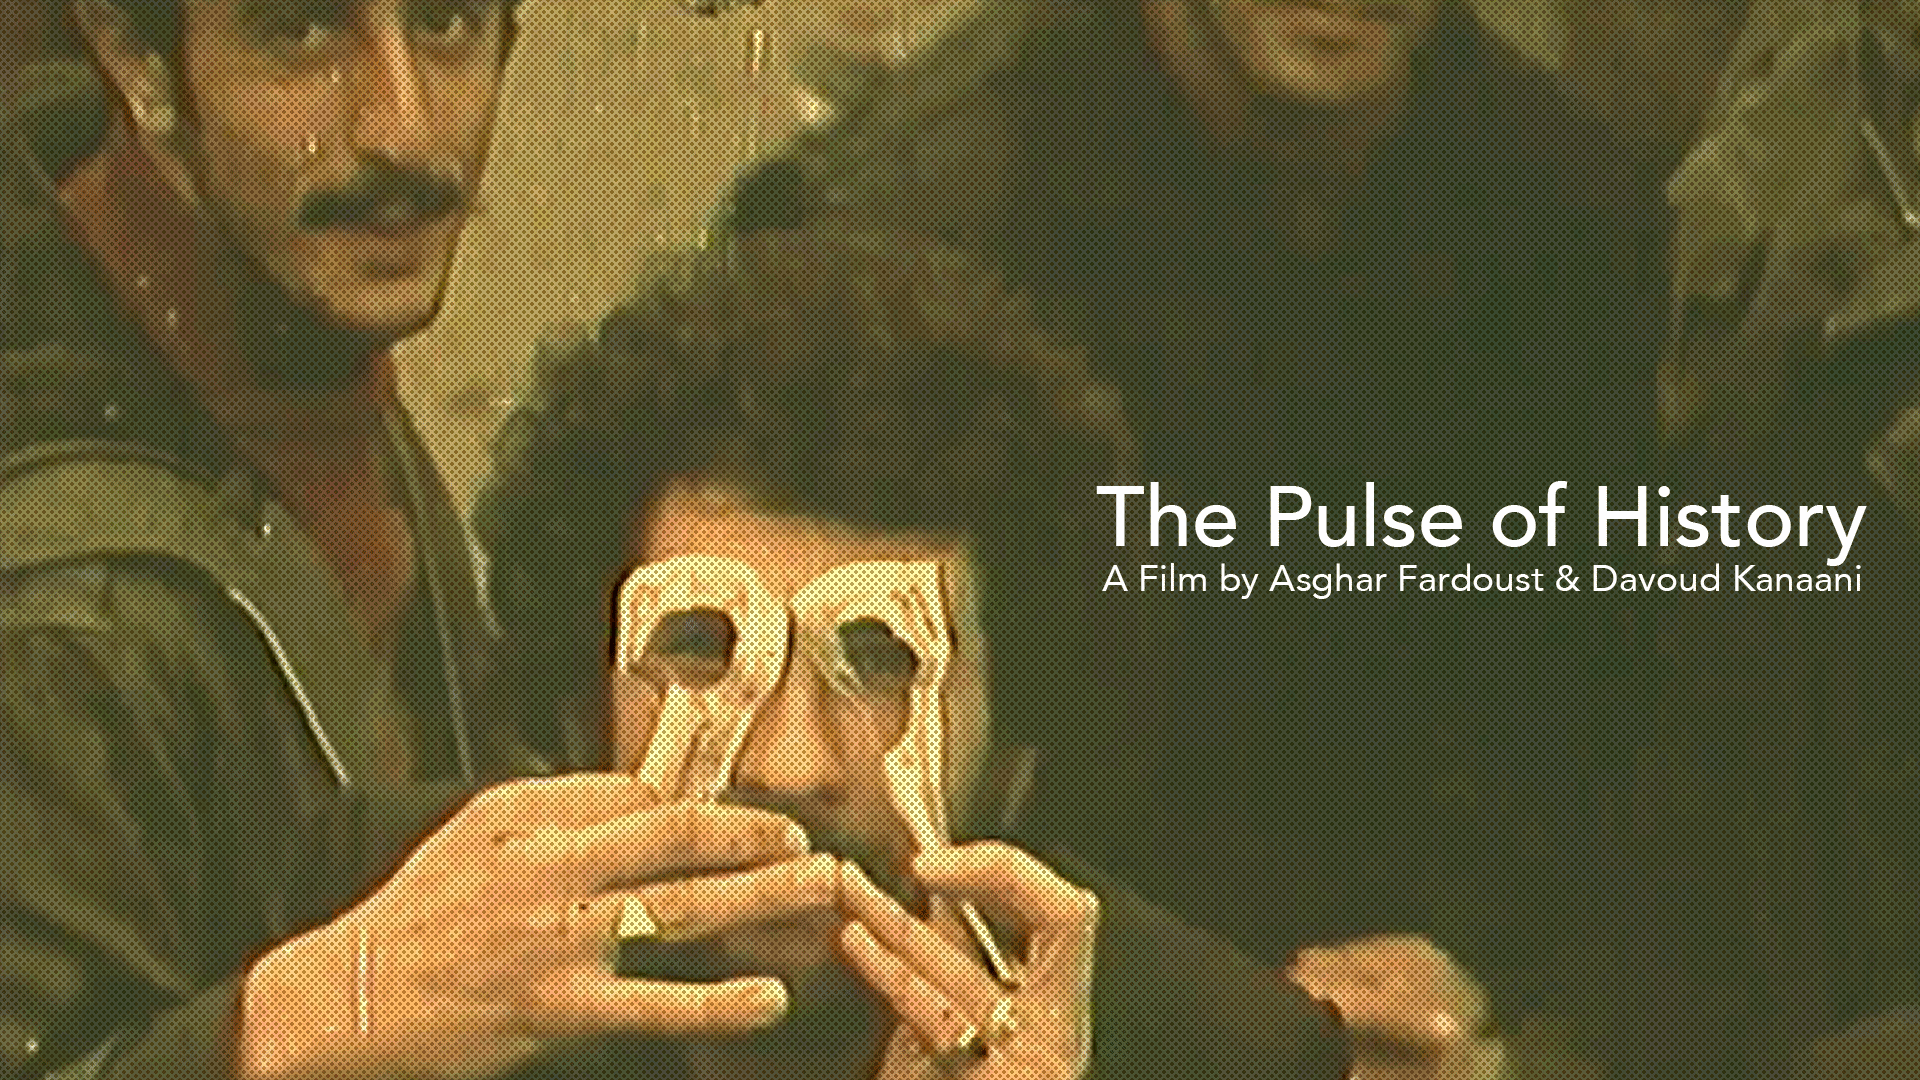 The Pulse of History (1979)